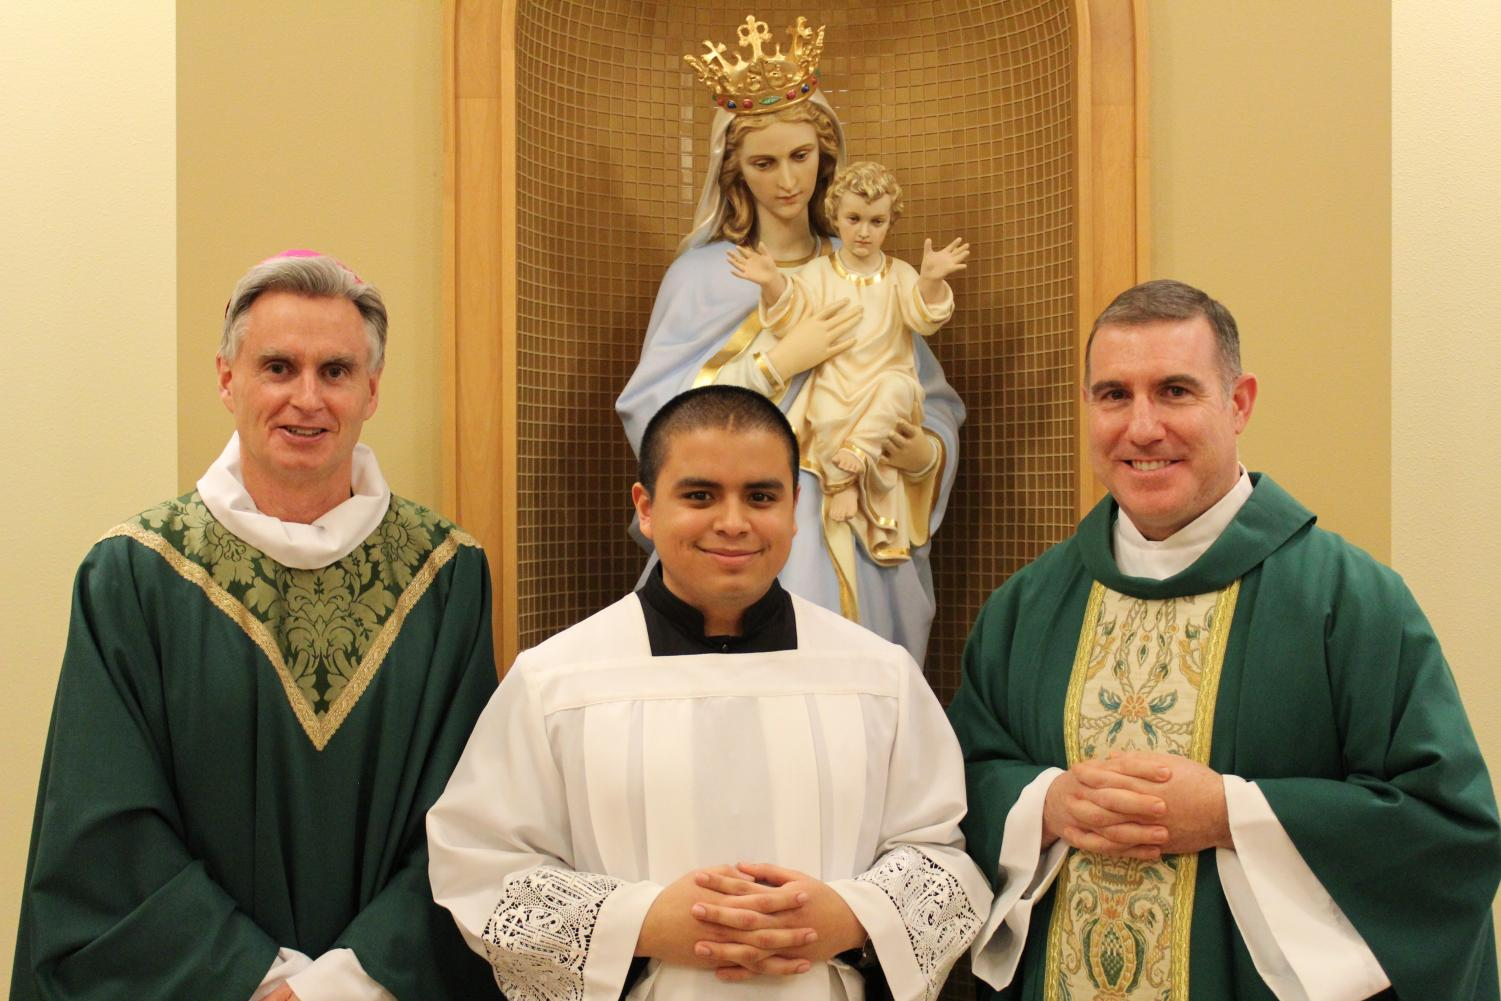 Jimmy Velasco '17 (center) with Bishop Thomas Daly of Spokane (left), and Fr. Patrick Summerhays, Director of Vocations for the Archdiocese.